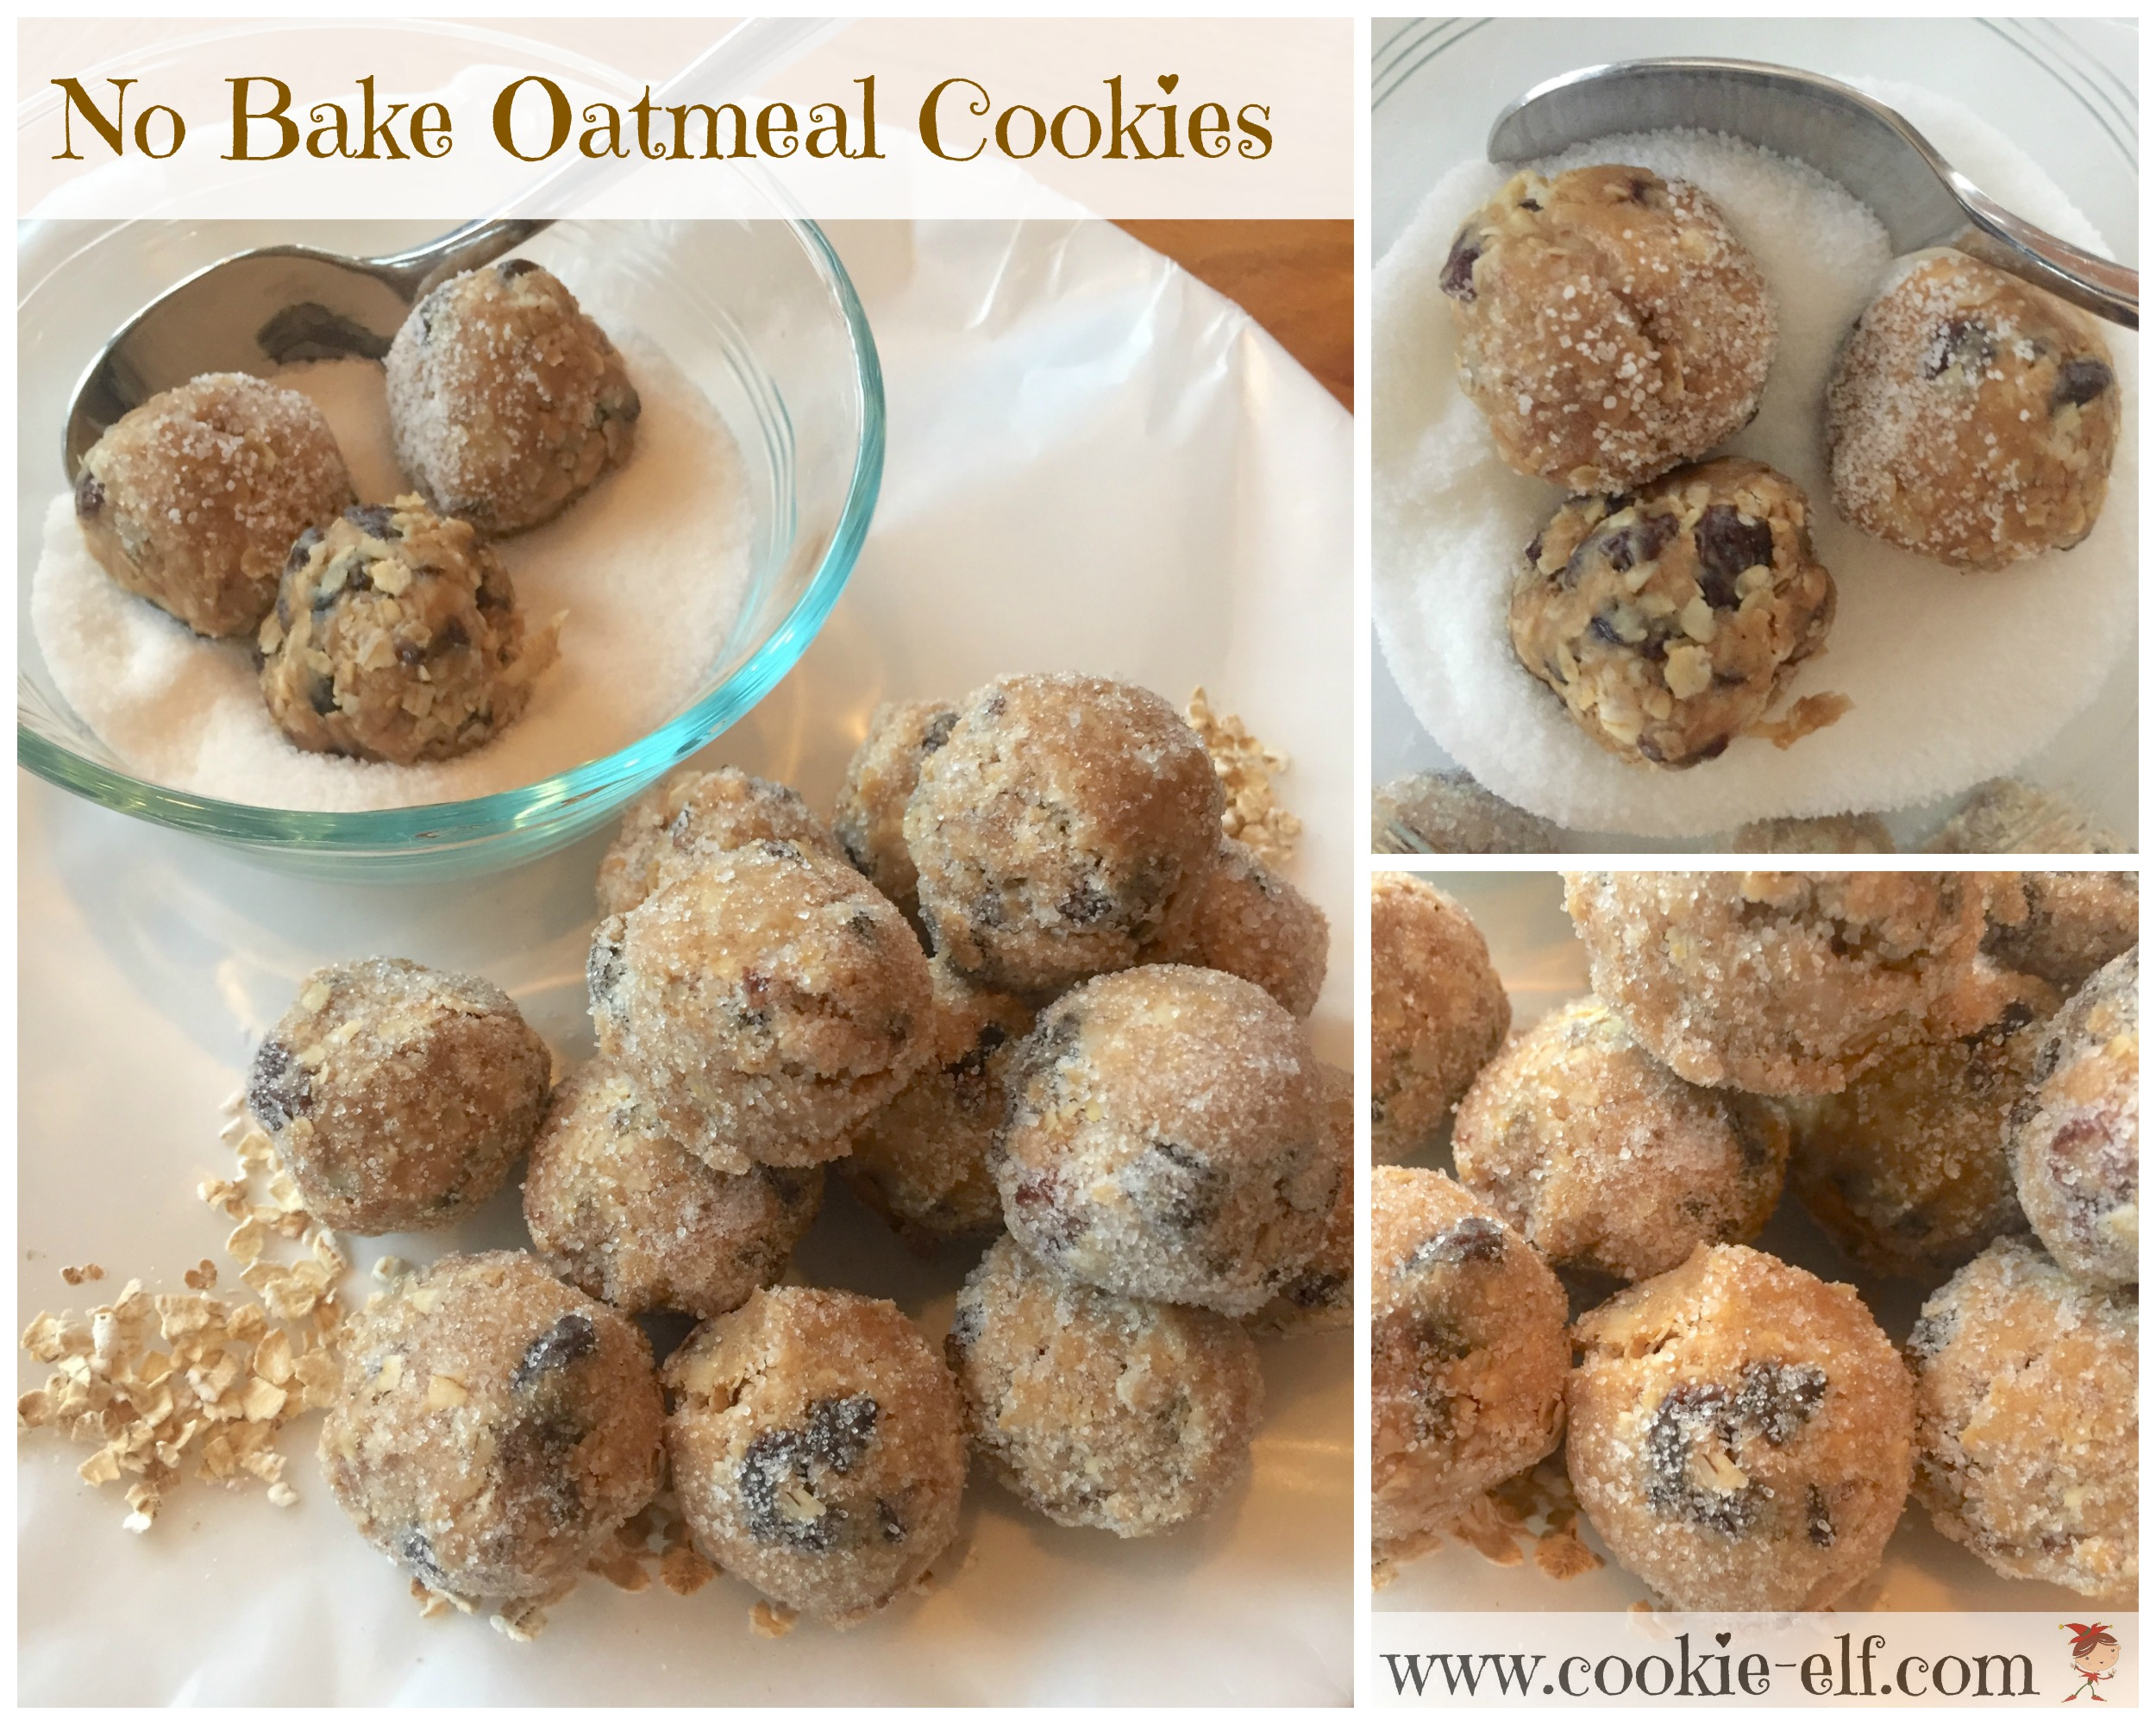 No Bake Oatmeal Cookies with The Cookie Elf